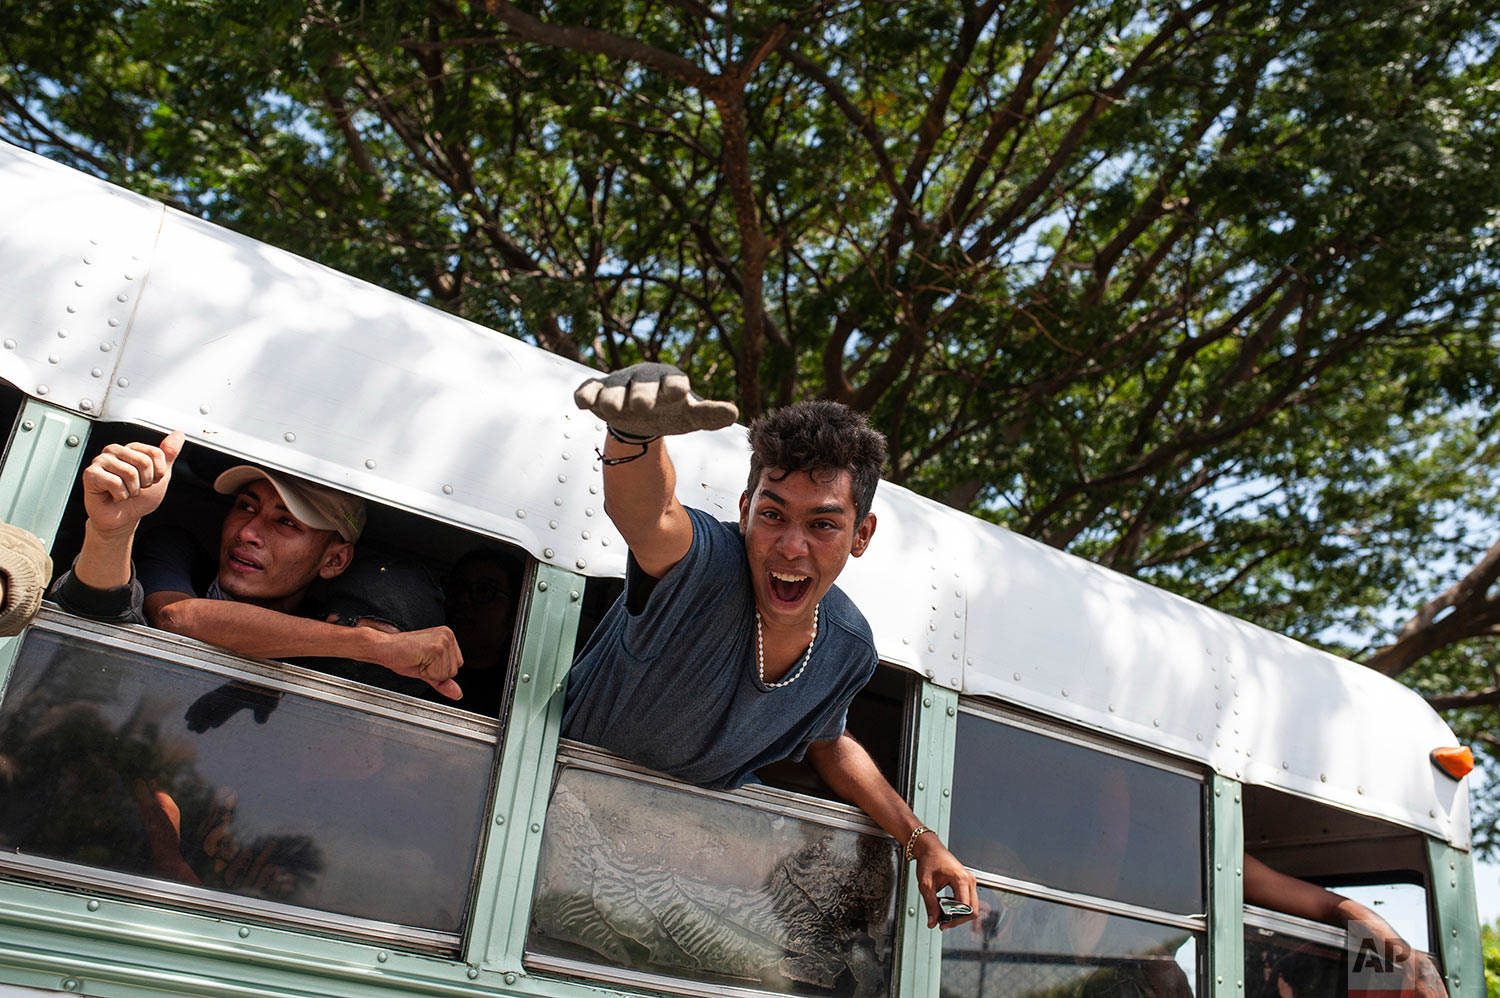 Students who had taken refuge in the Jesus of Divine Mercy church amid a barrage of armed attacks, arrive on a bus to the Cathedral in Managua, Nicaragua, July 14, 2018. Cardinal Leopoldo Brenes negotiated for the safe transfer of students who had sought refuge there when police forced them out of the National Autonomous University of Nicaragua, which had been occupied during two months of protests against the government of President Daniel Ortega. (AP Photo/Cristobal Venegas)